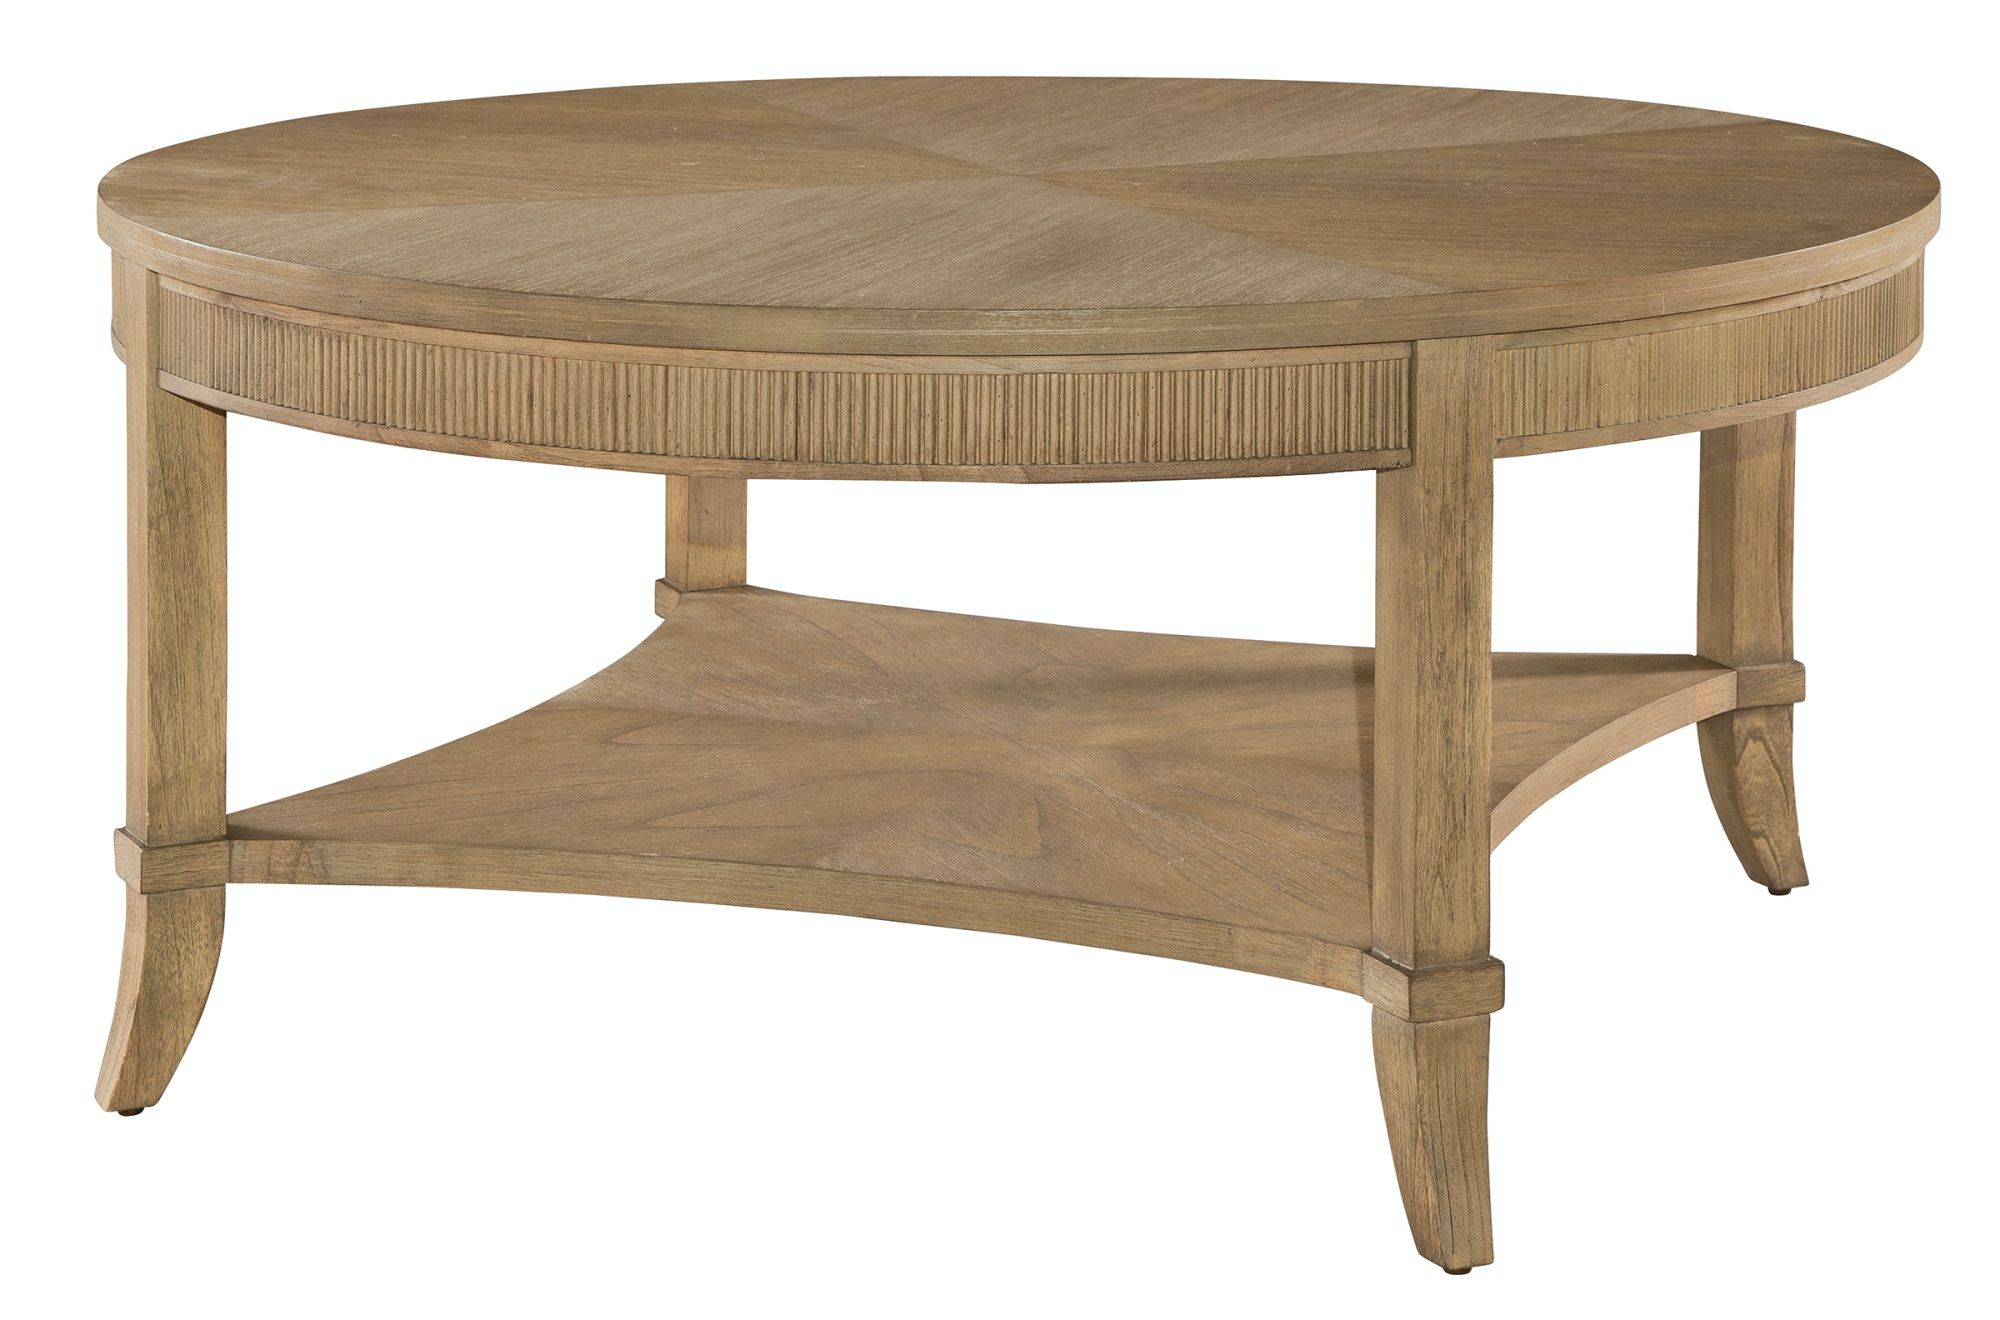 urban retreat furniture. urban retreat furniture rd coffee table reed apon flmb inspiration